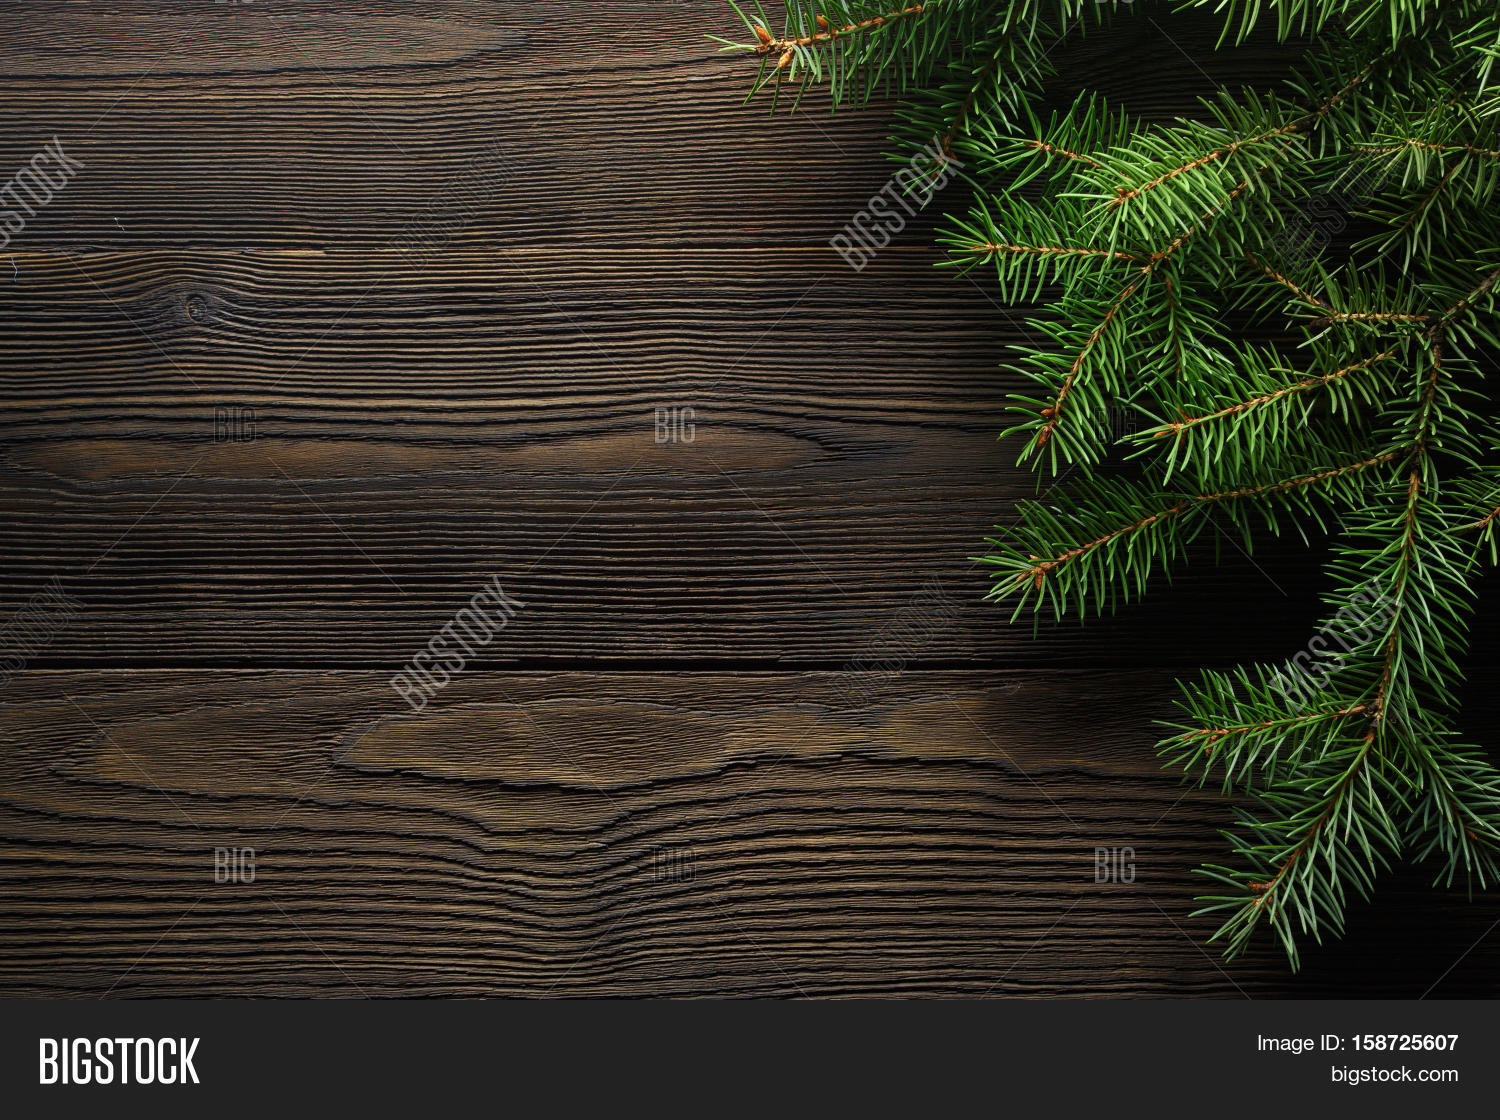 Christmas Wooden Background With Fir Tree Wreath Rustic Wood